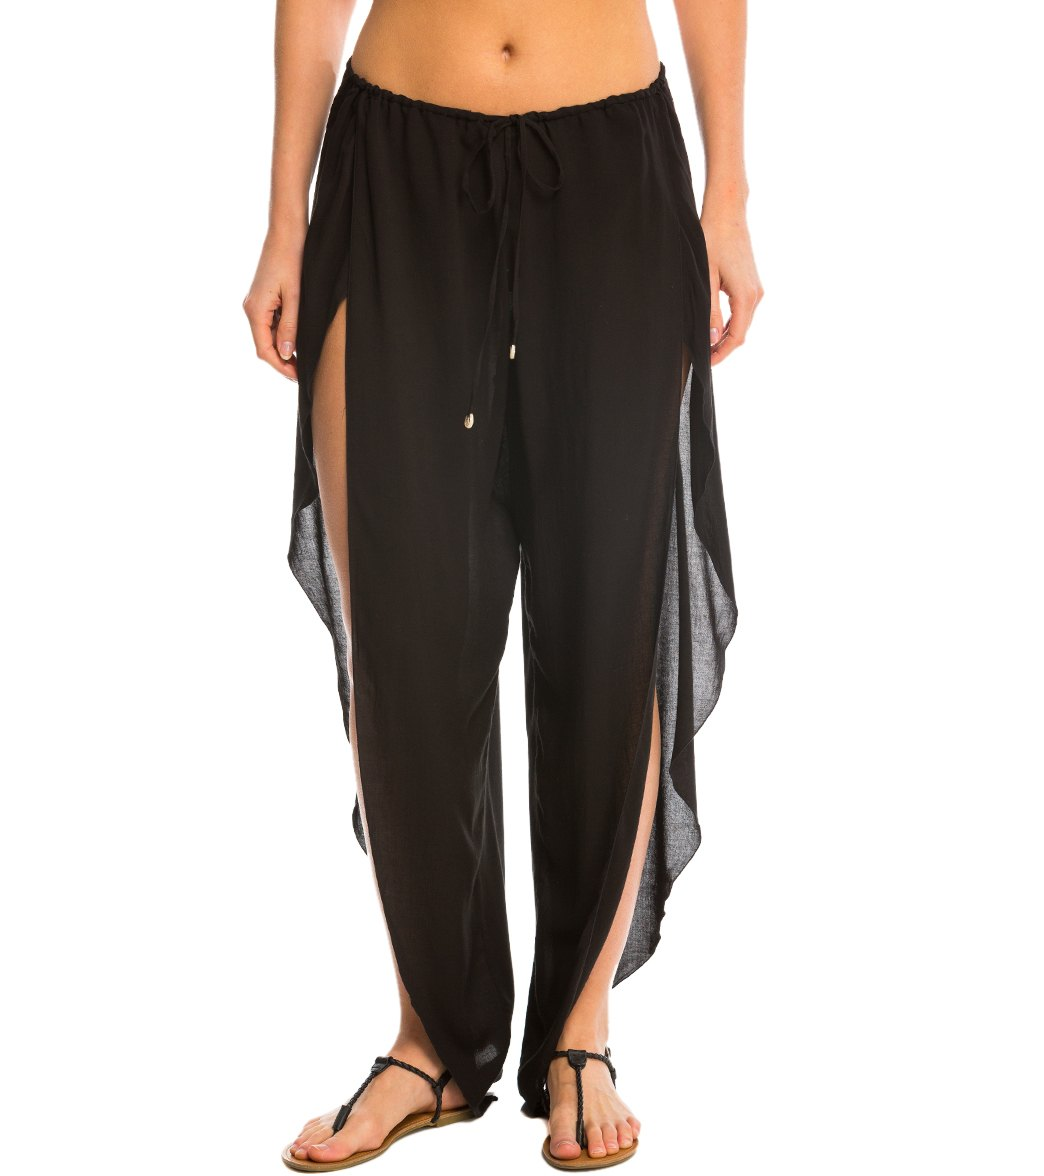 1808d7aa57 Indah Need Want Love Val Solid Drawstring Butterfly Cover Up Pant at  SwimOutlet.com - Free Shipping